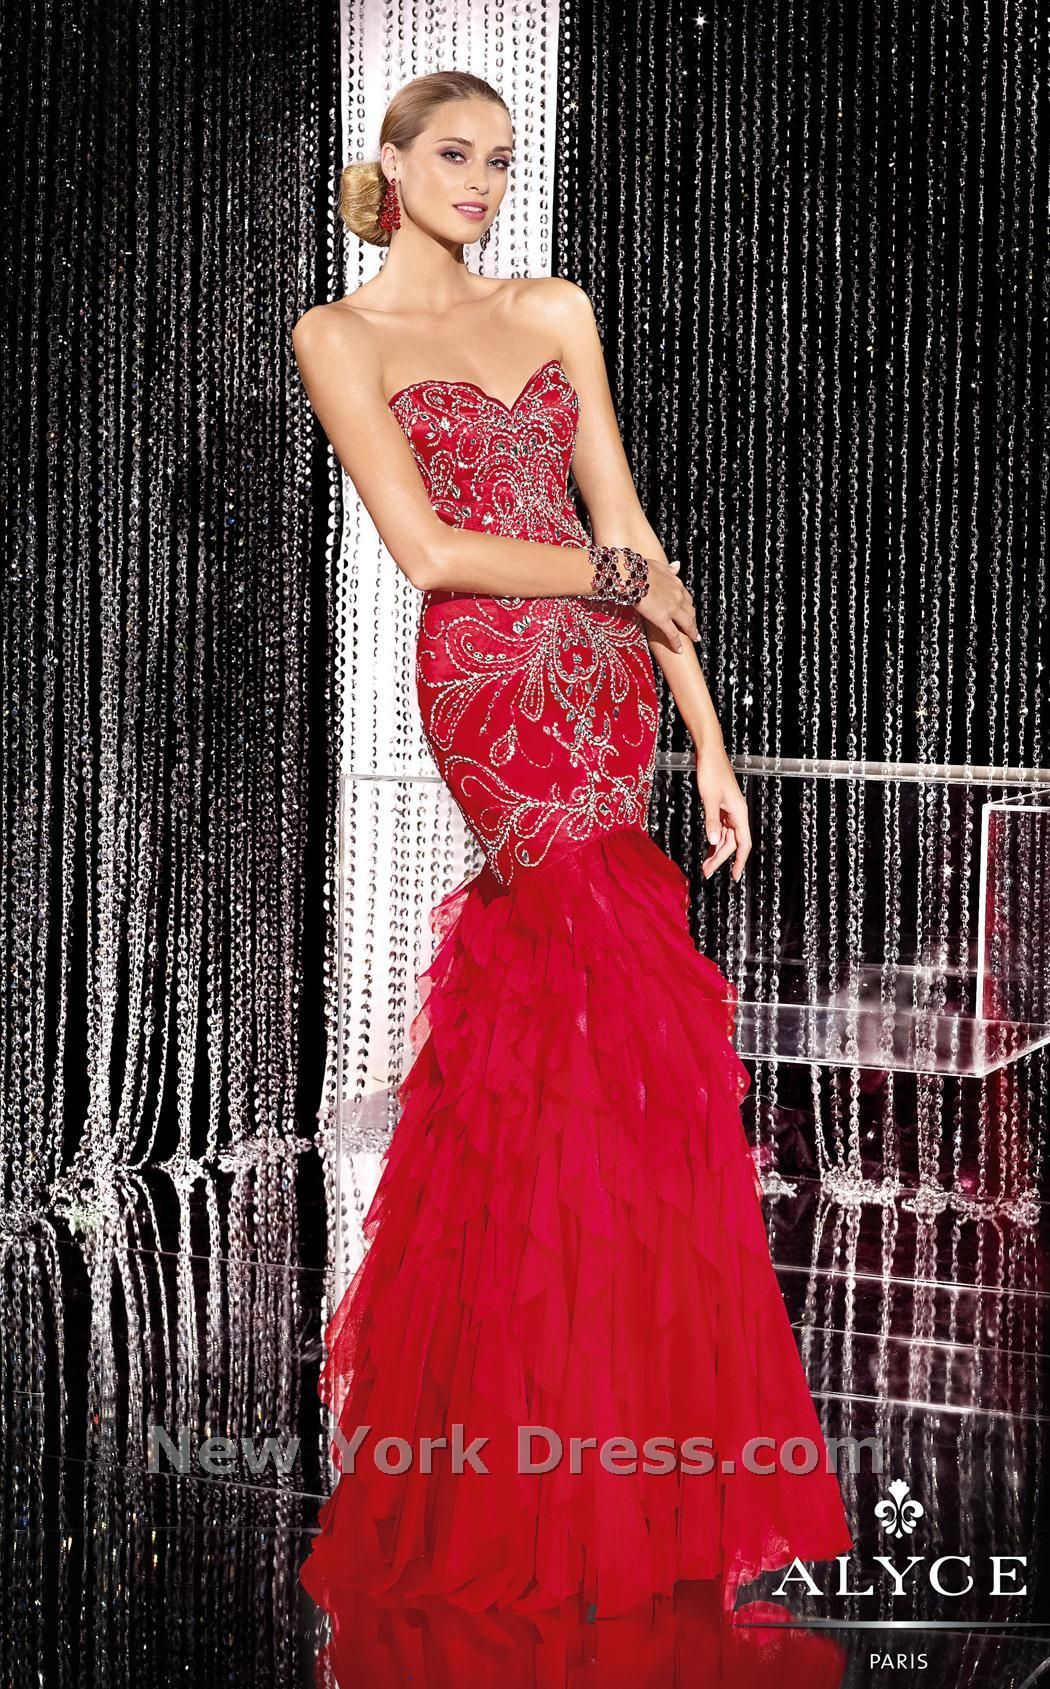 Pin by diane p on colorred u silver pinterest glamorous evening